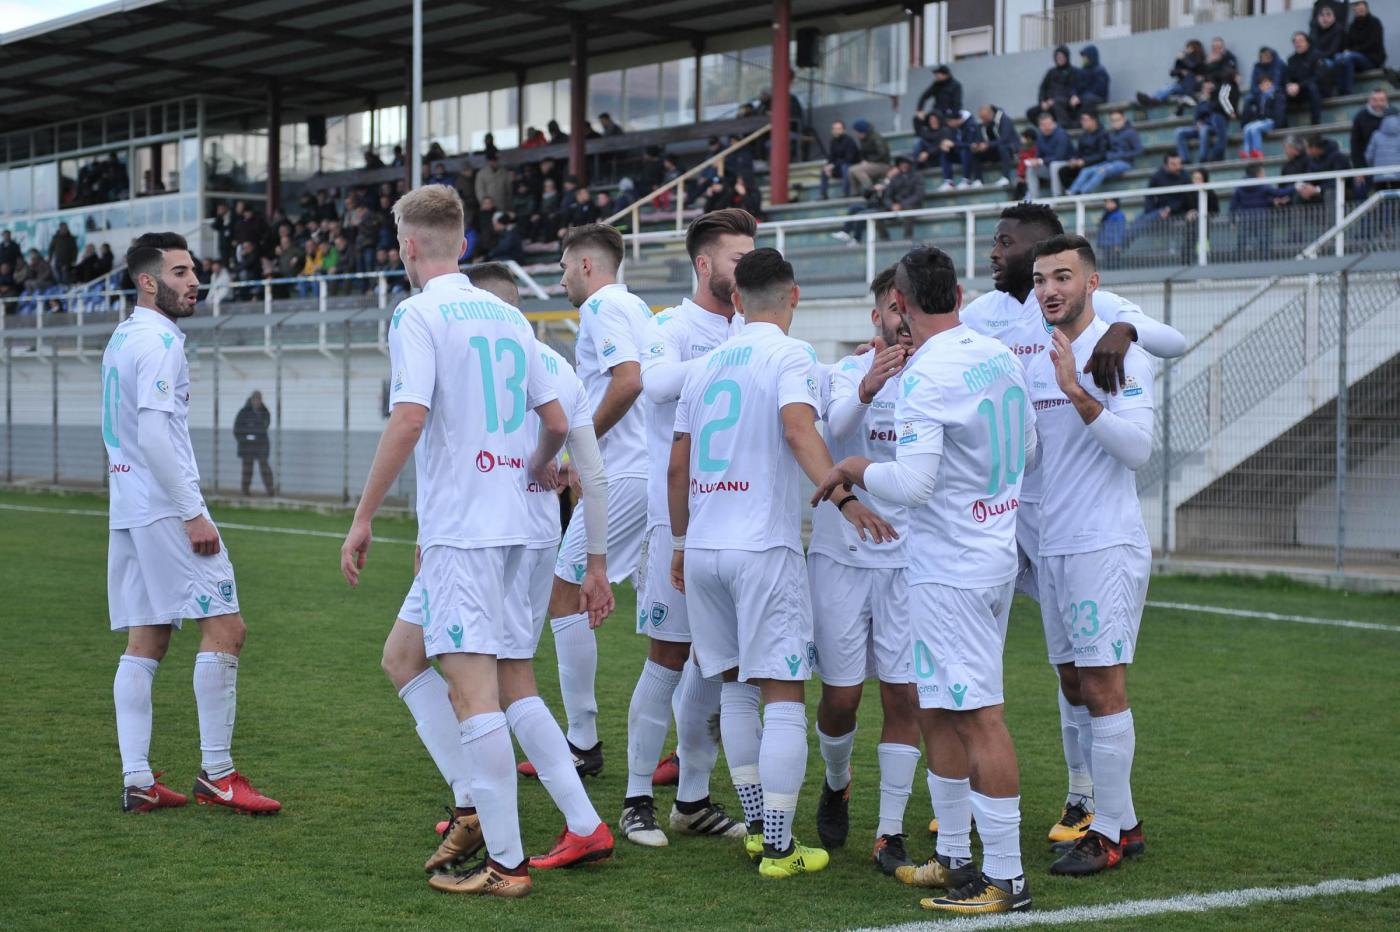 Serie C, Olbia-Lucchese 30 marzo: toscani in zona rossa